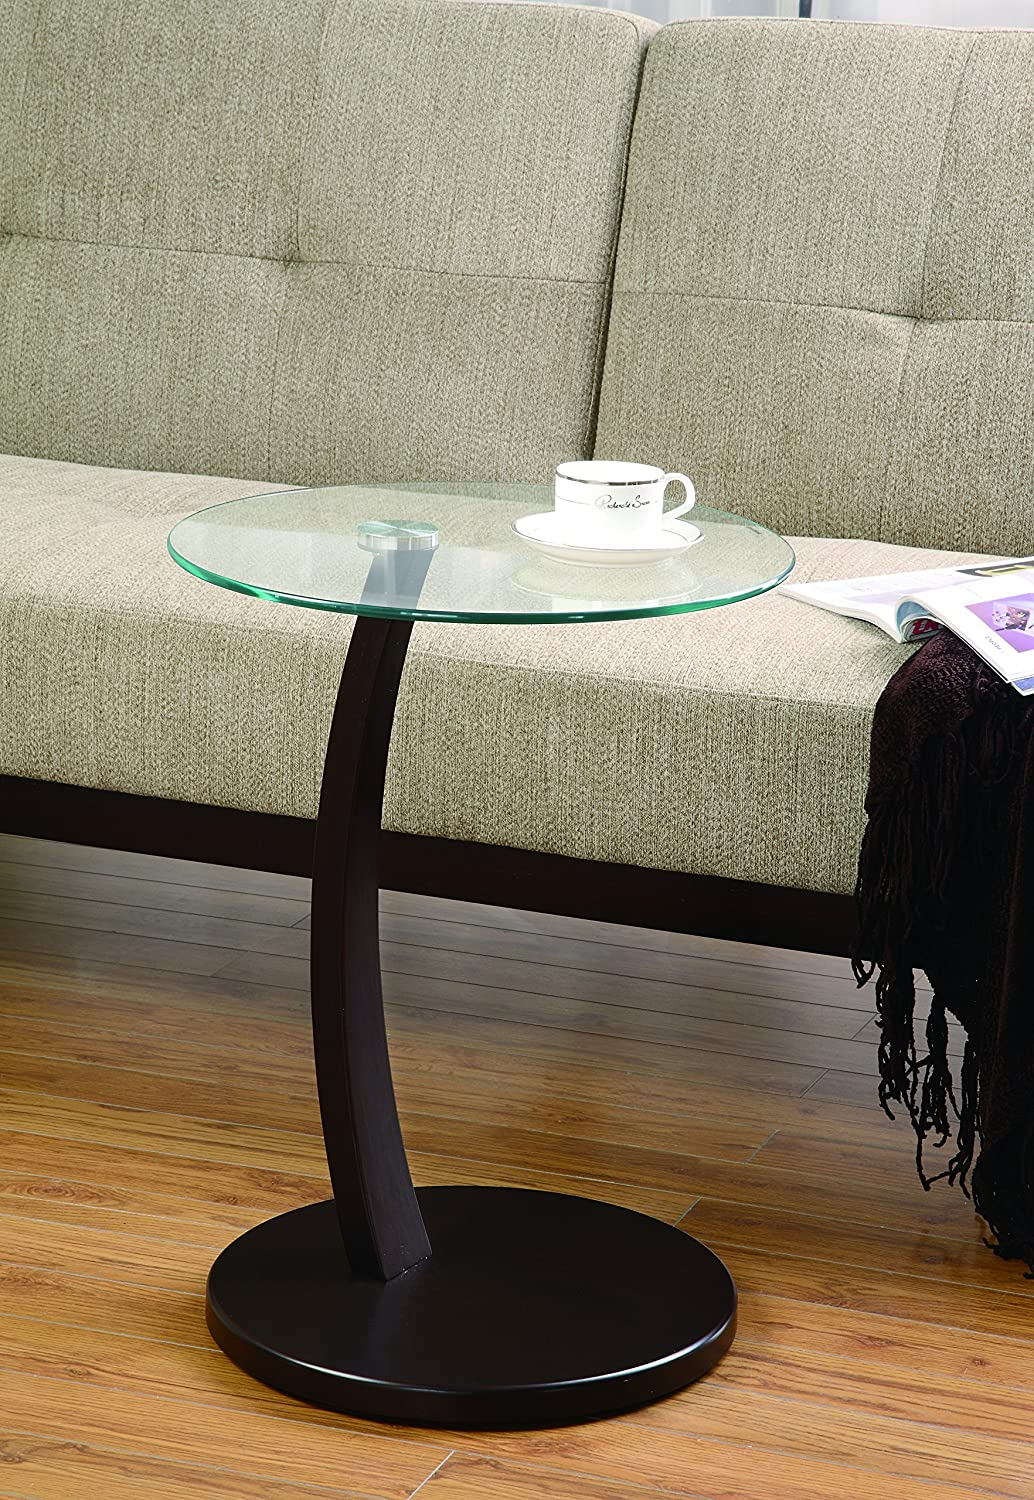 Coaster 900256 Round Accent Table with Glass Top & Cappuccino Base